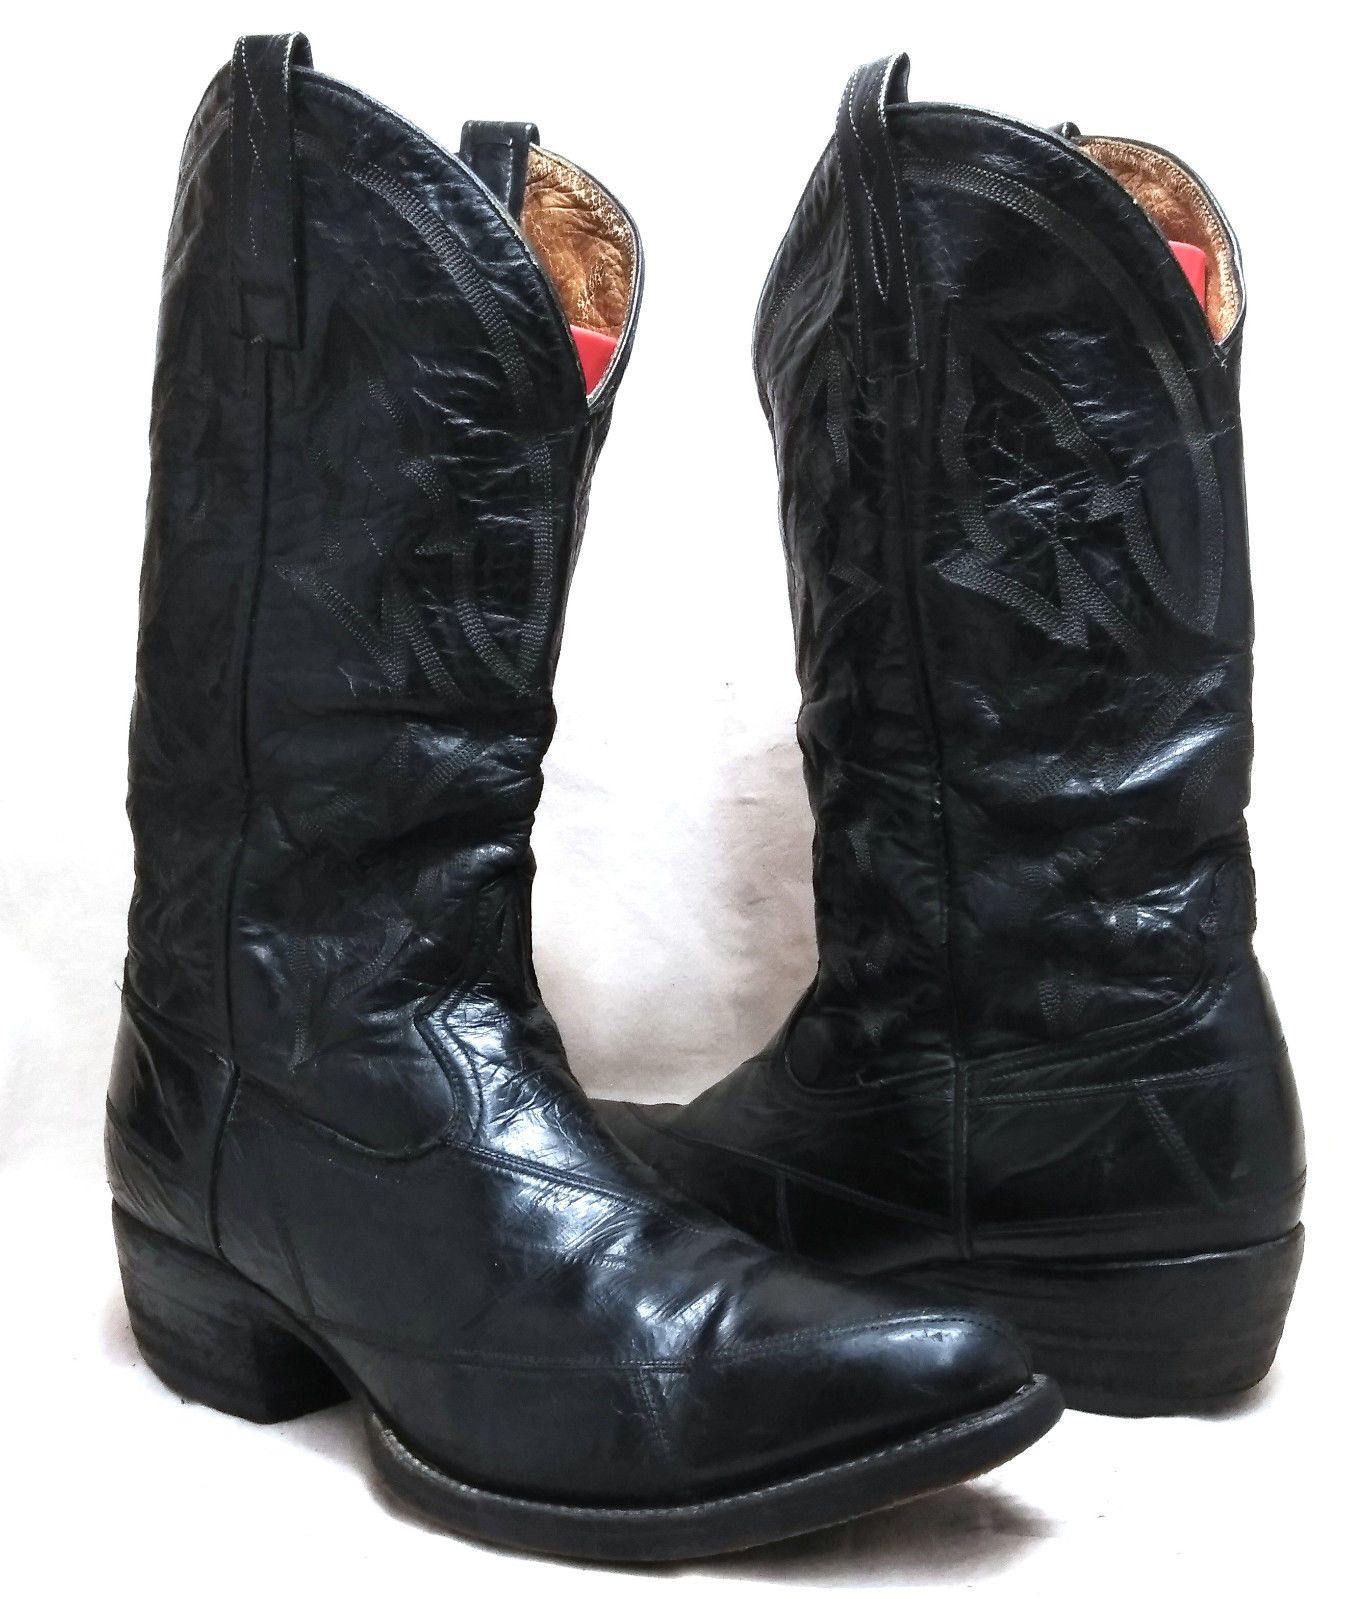 ac379170e80 Rock solid pair of Old West Boots! | Boot Scootin' Fun | Boots ...